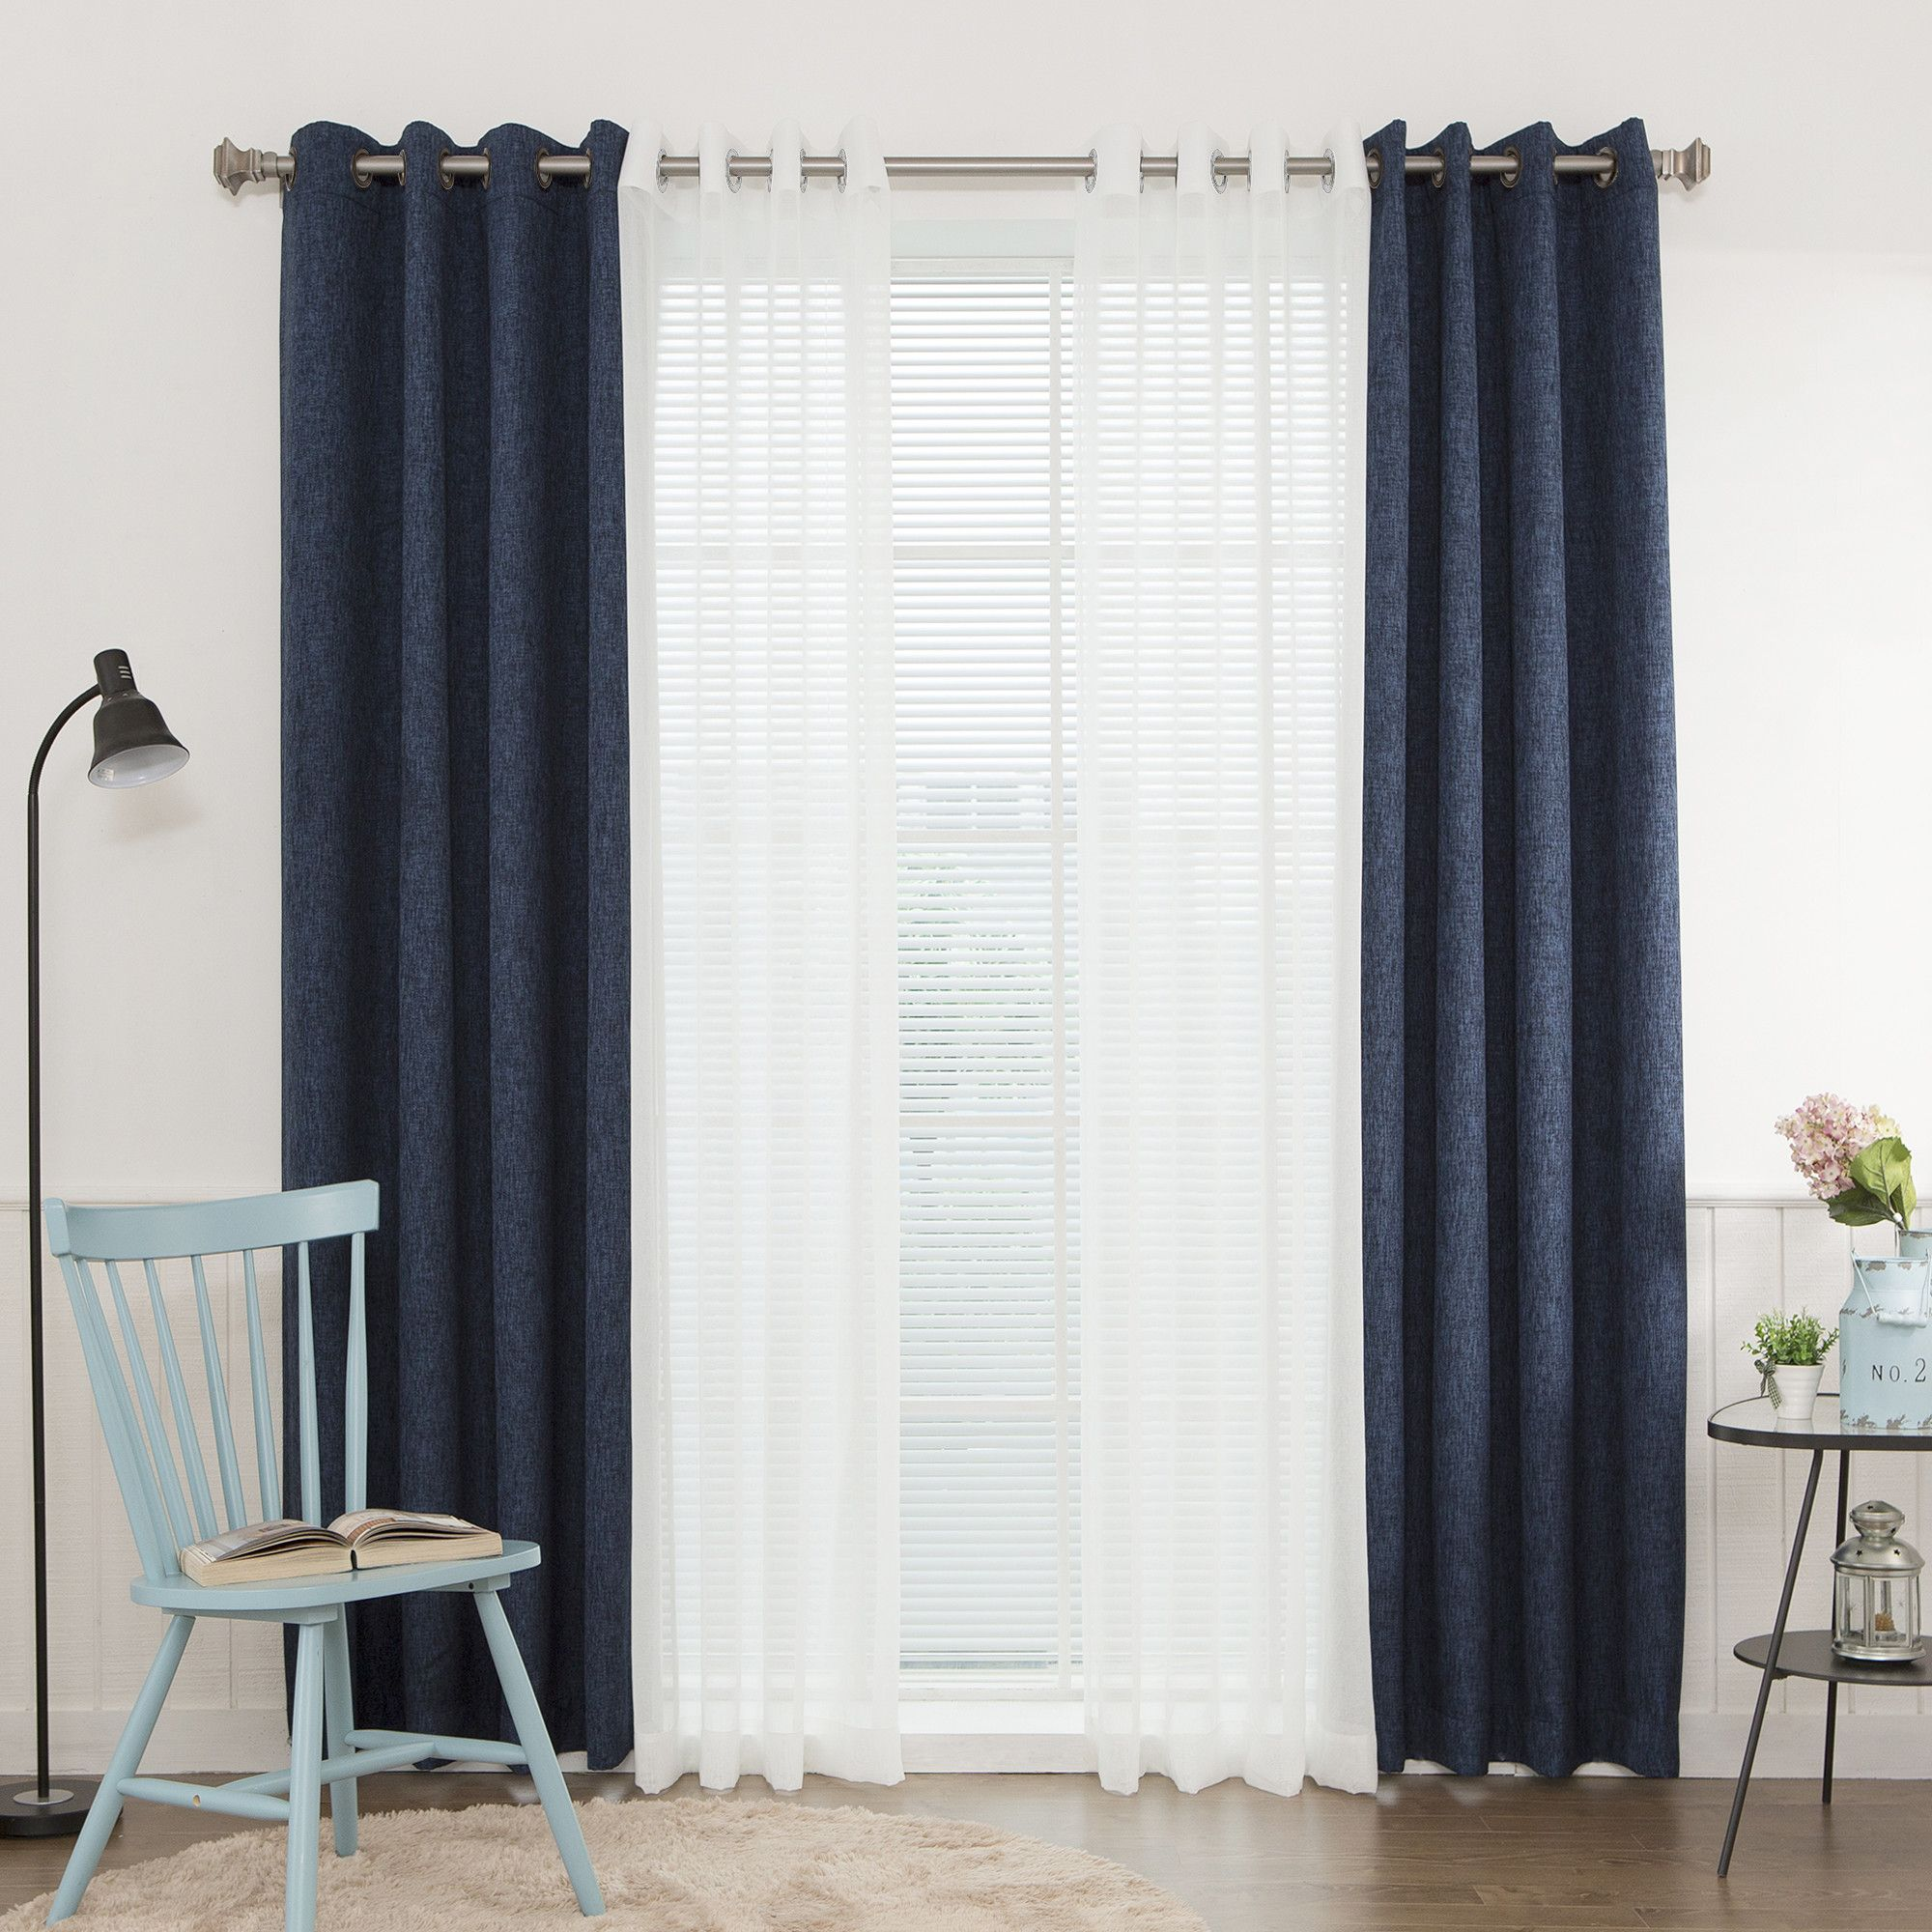 for peachy displaying appealing curtain of sheer lace cobalt curtains and styles ideas light tfile blue